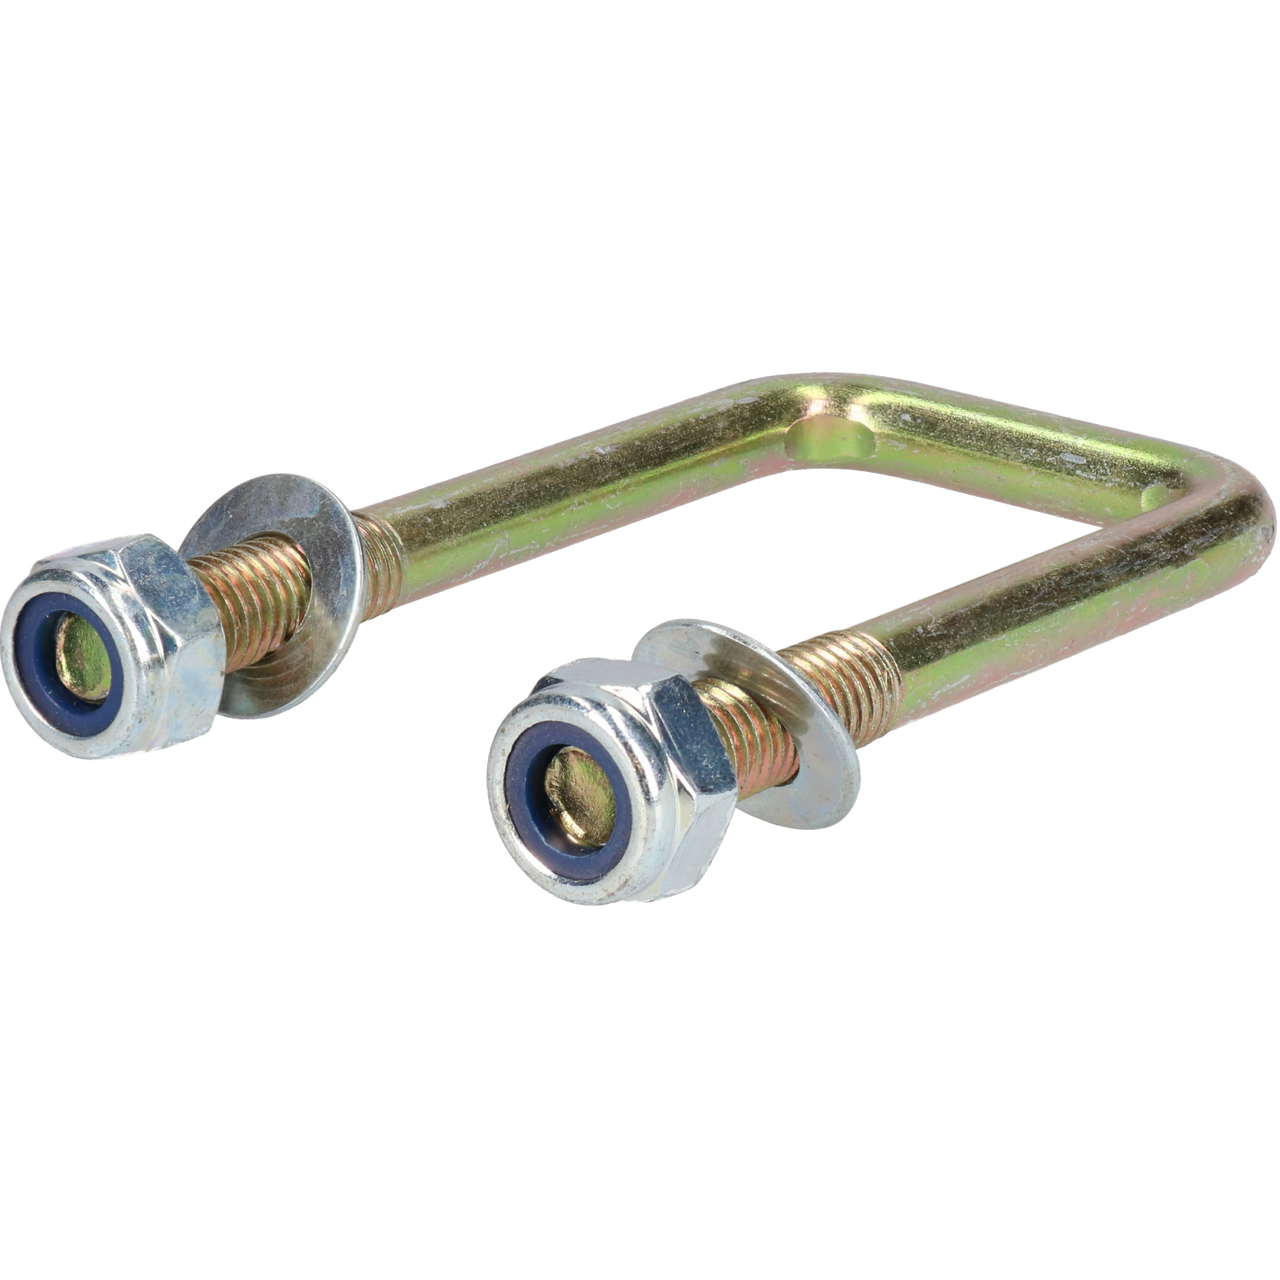 M10 40mm x 88mm UBolt / NBolt for Trailers 1 PAIR with Nuts HIGH TENSILE UBR02